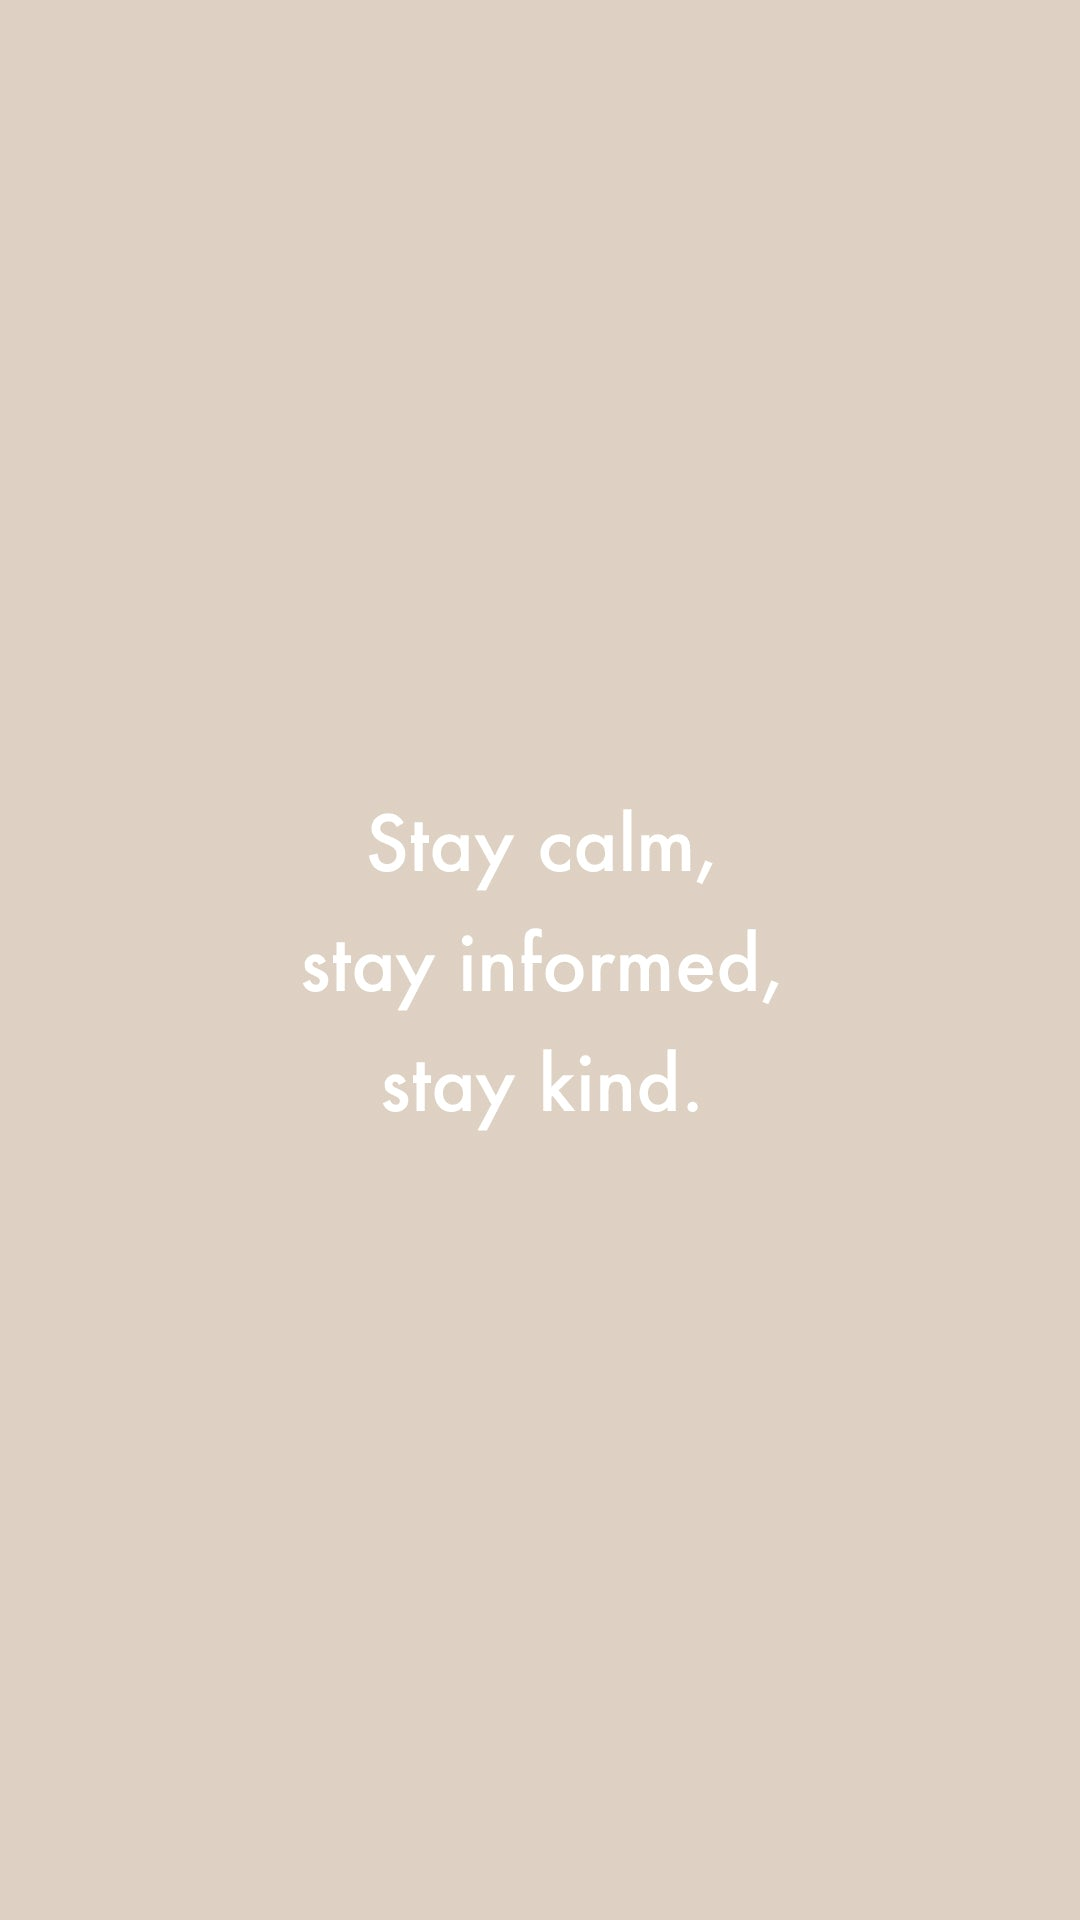 Stay calm, stay informed, stay kind.